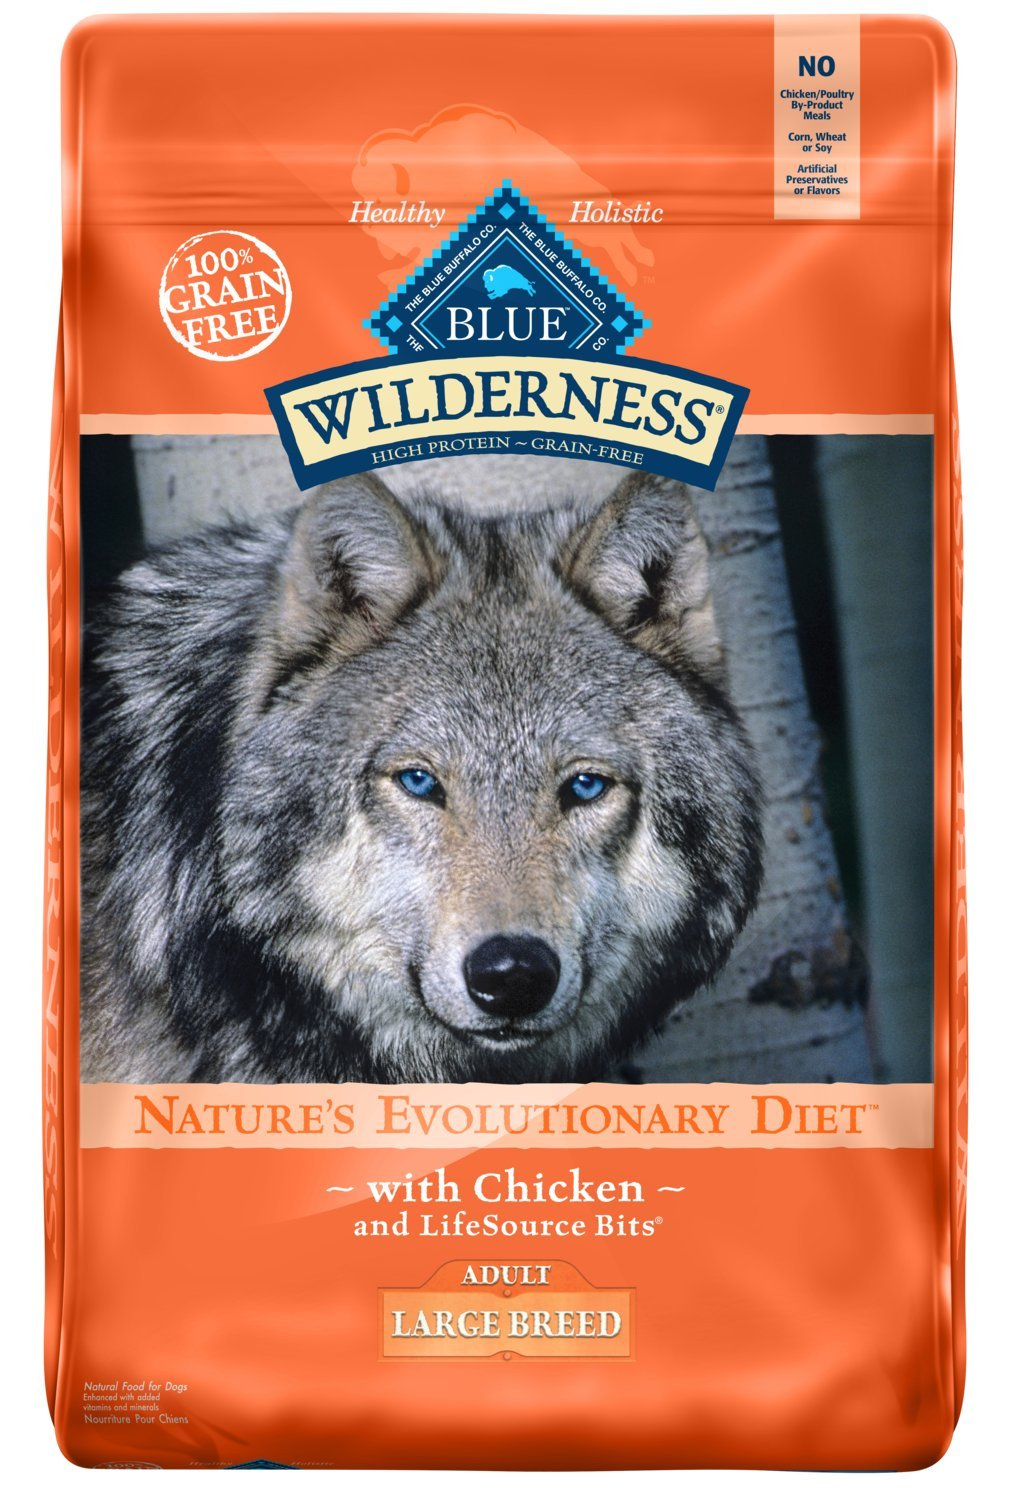 1.Blue Buffalo Wilderness High Protein Grain-Free Natural Adult Large Breed Dry Dog Food